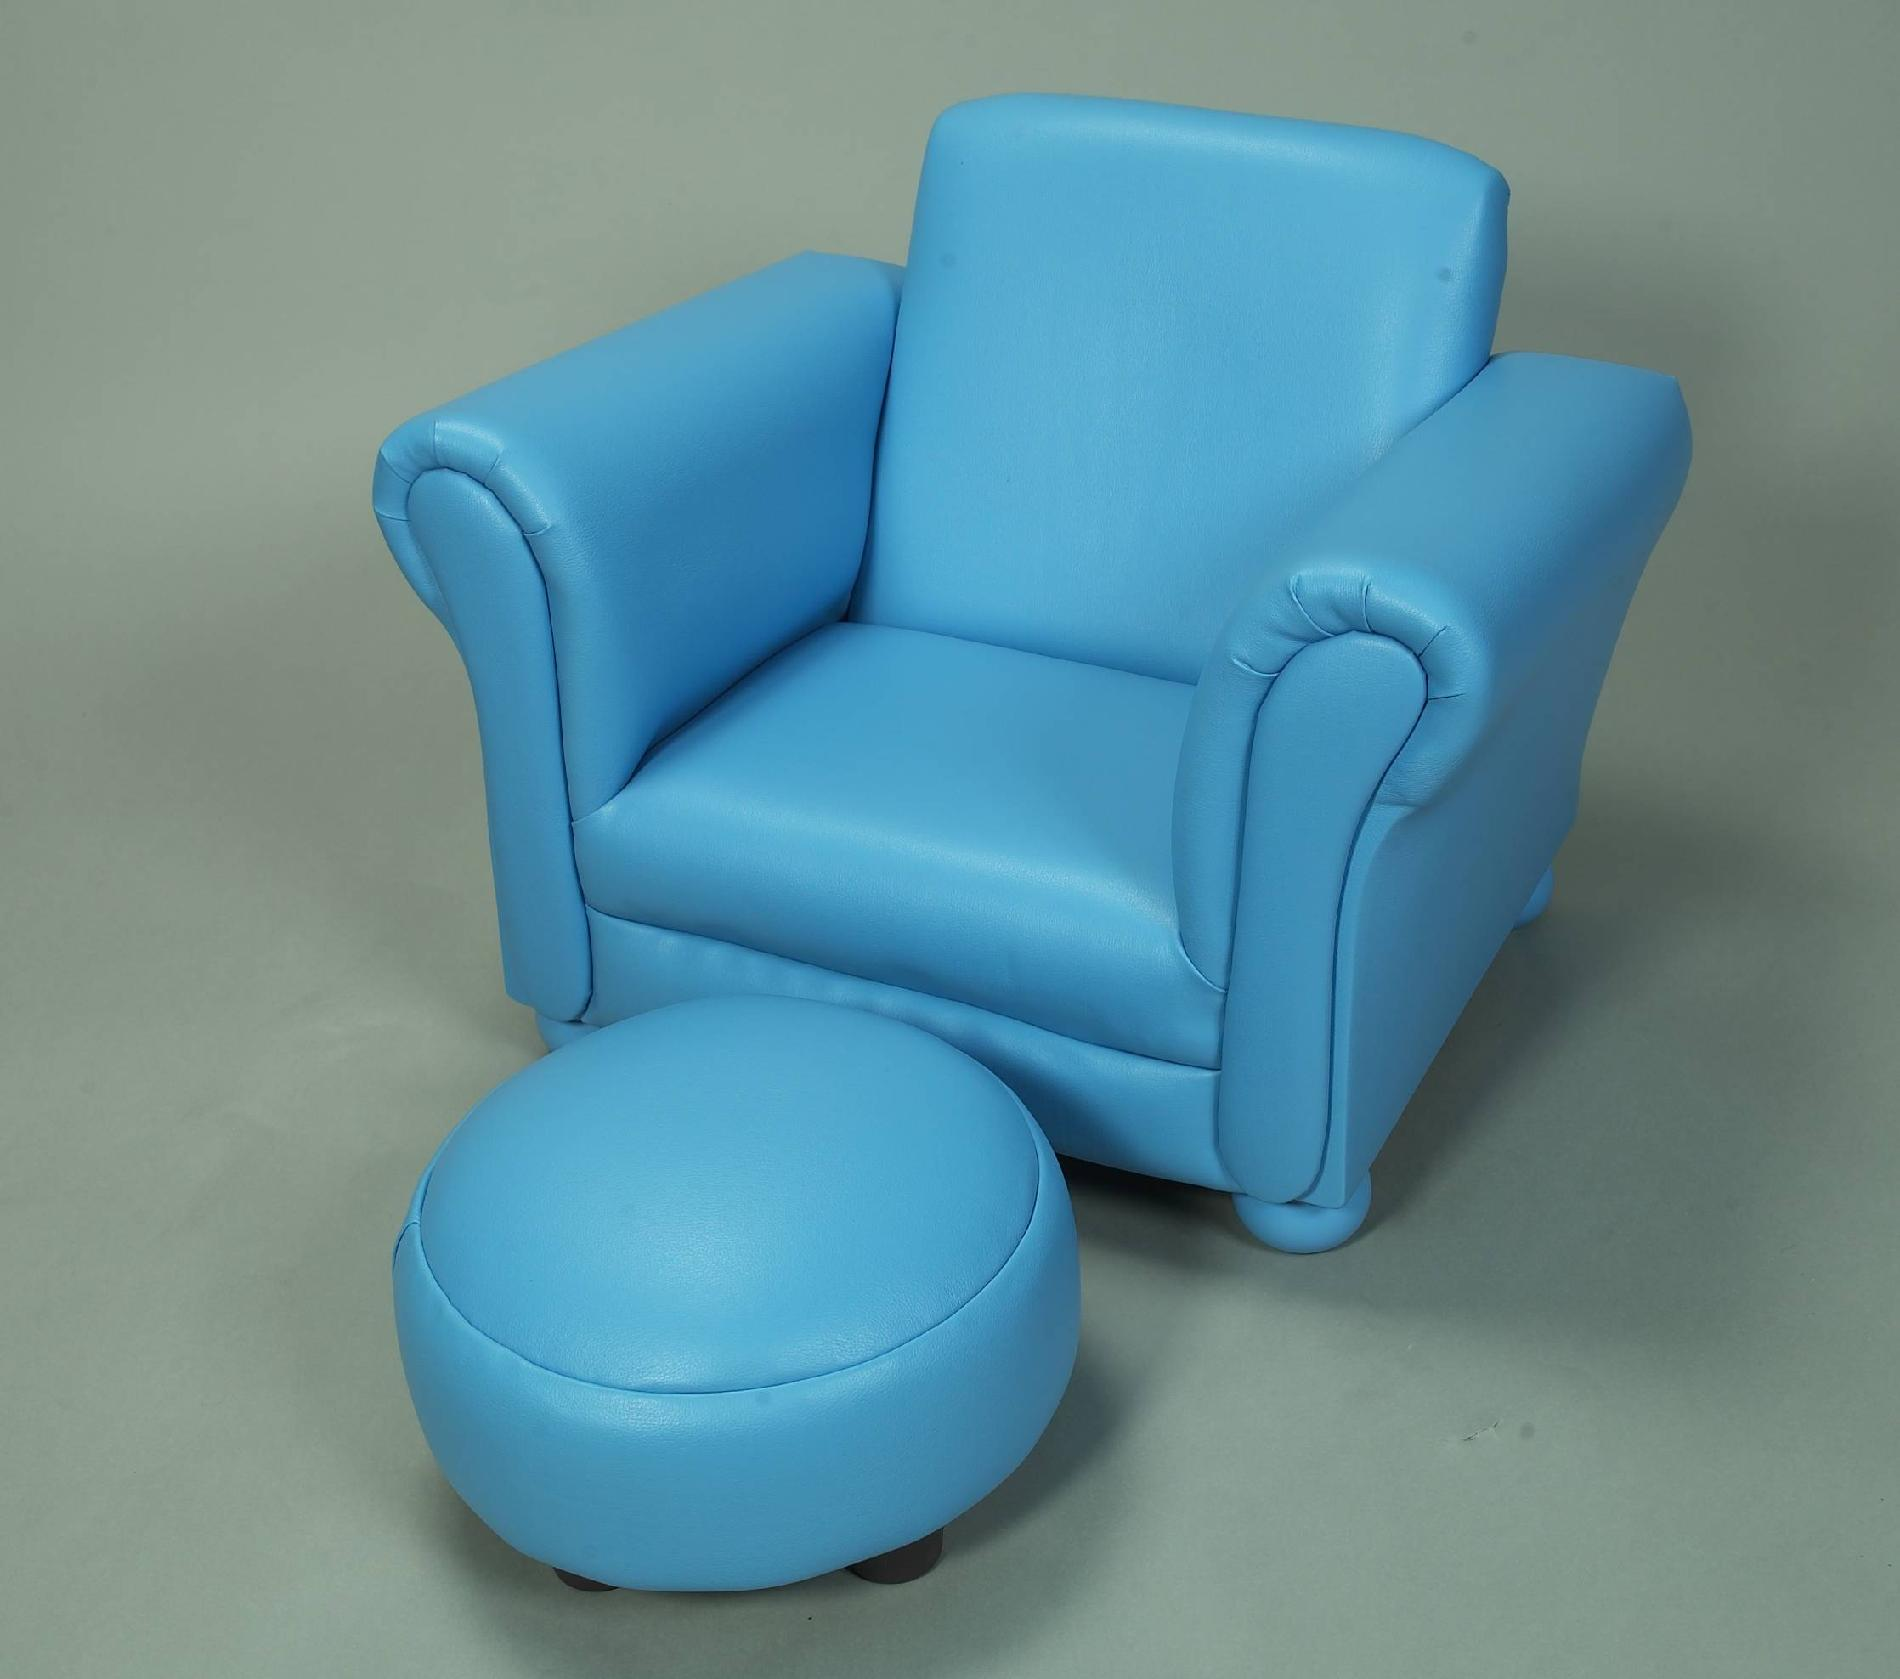 chairs and ottomans upholstered revolving chair daraz gift mark 6705b child s with ottoman in blue